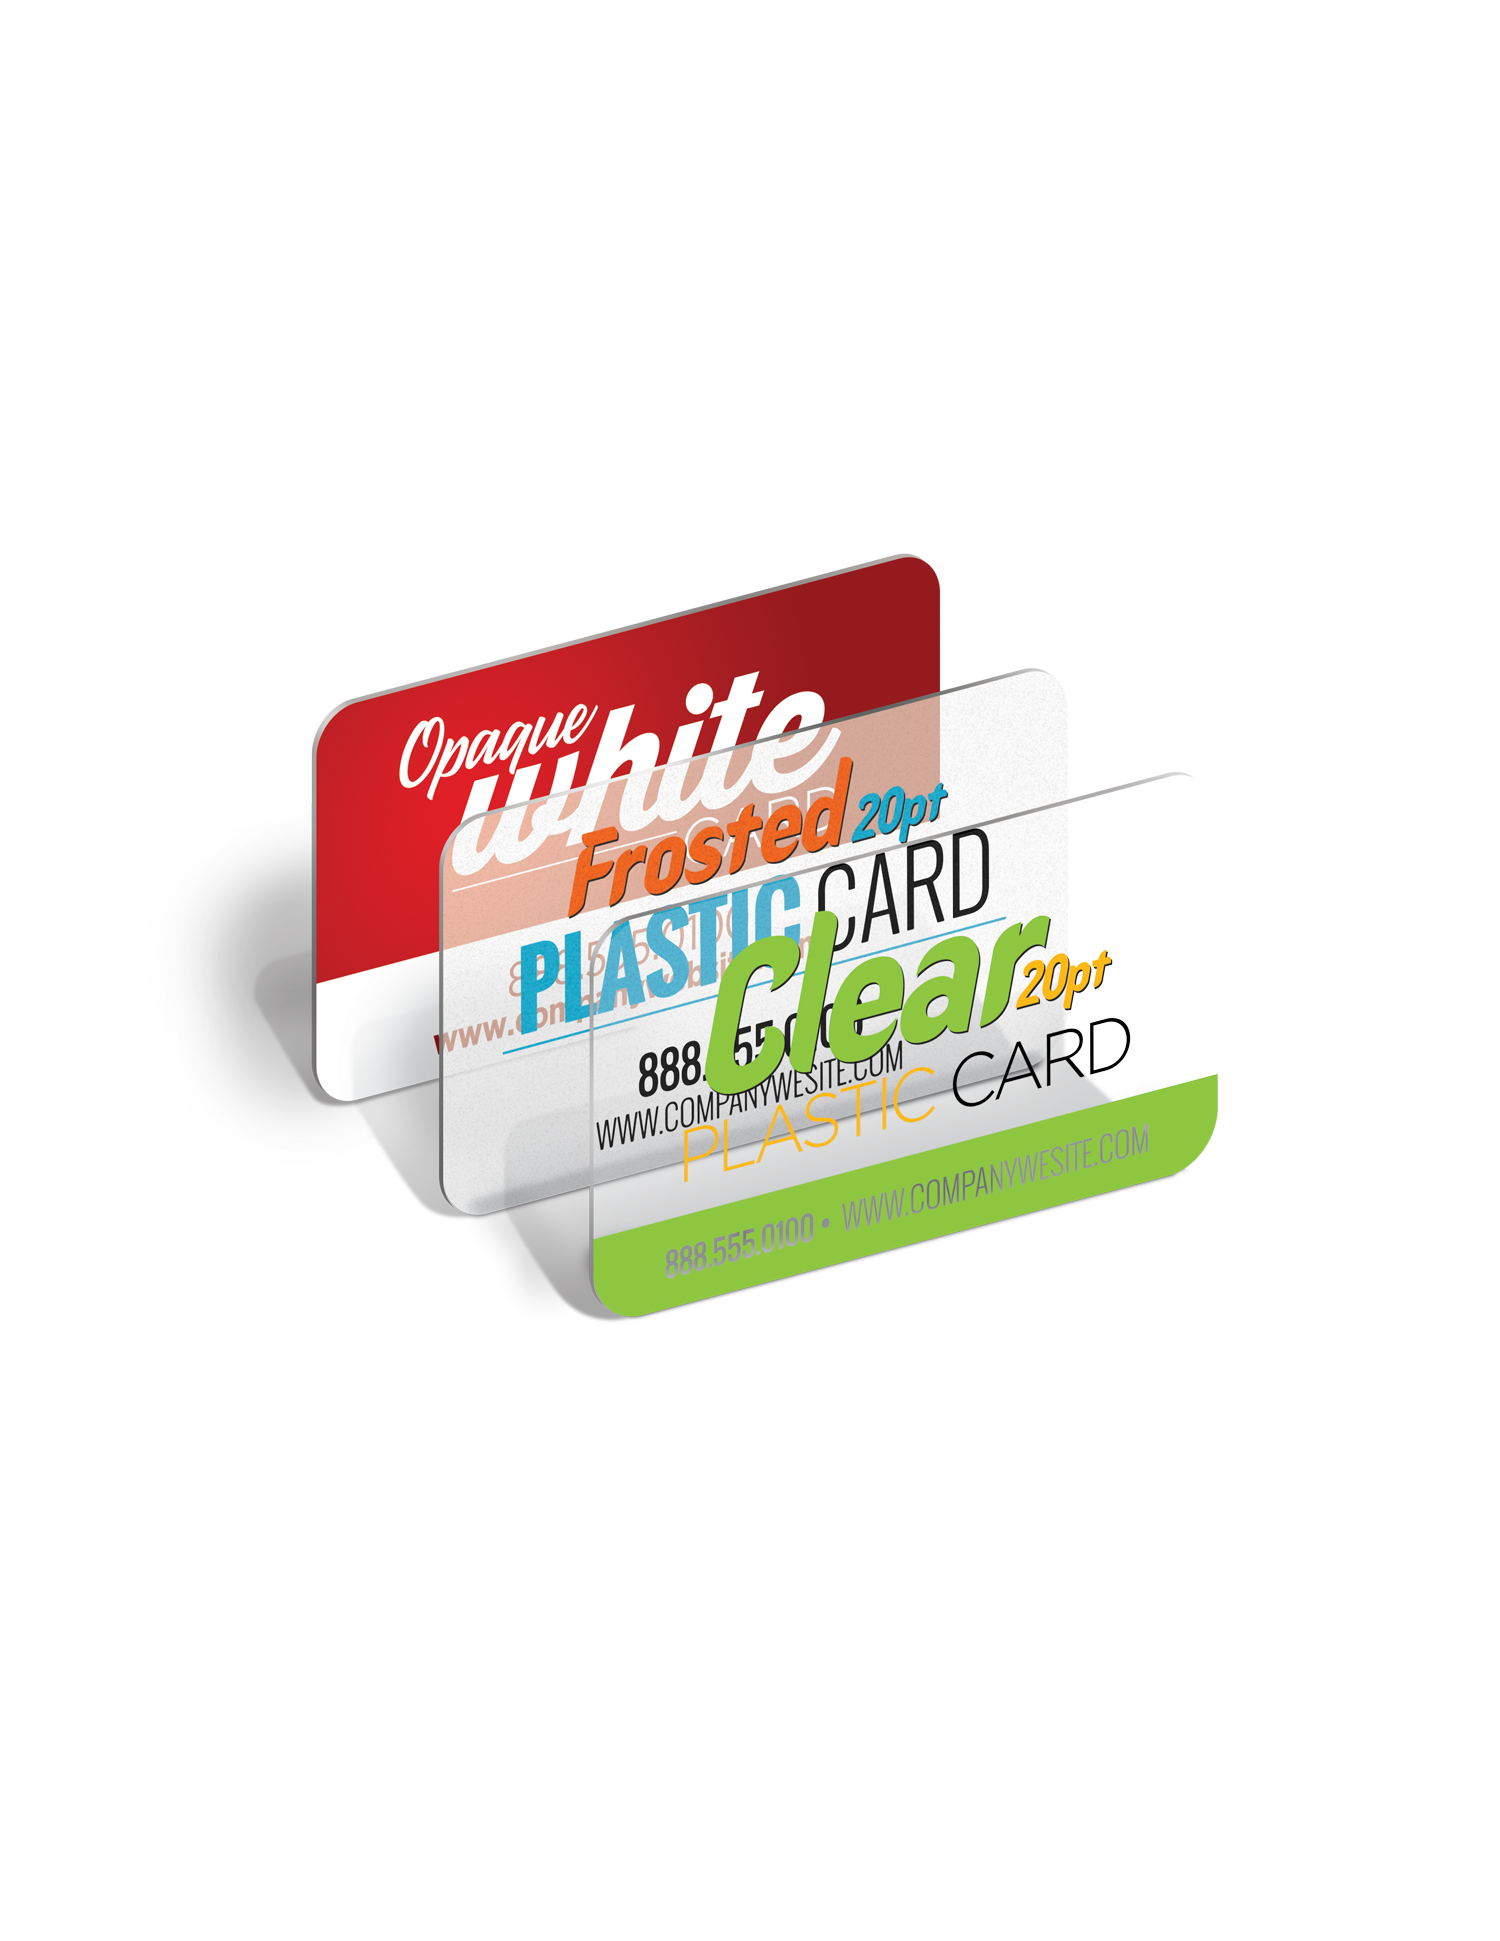 Plastic Business Card Printing - Full Color Printing Services - Roseville Printing California